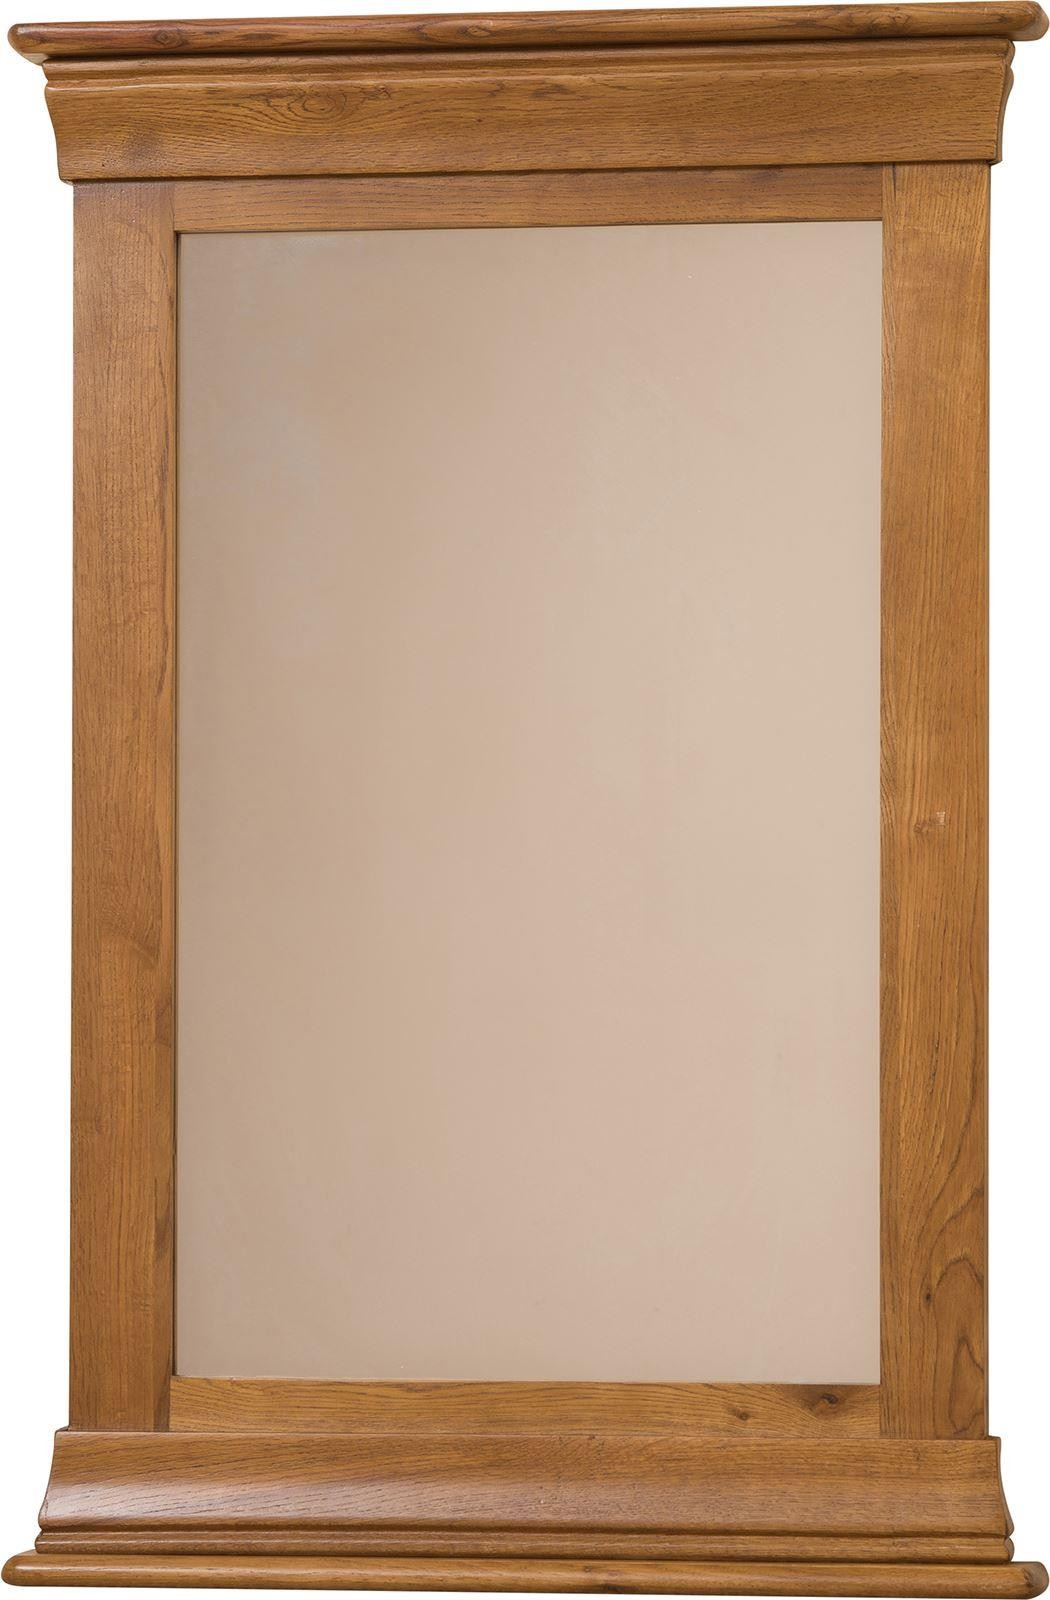 French chateau wall mirror modern furniture direct french chateau rustic solid oak wall mirror amipublicfo Choice Image